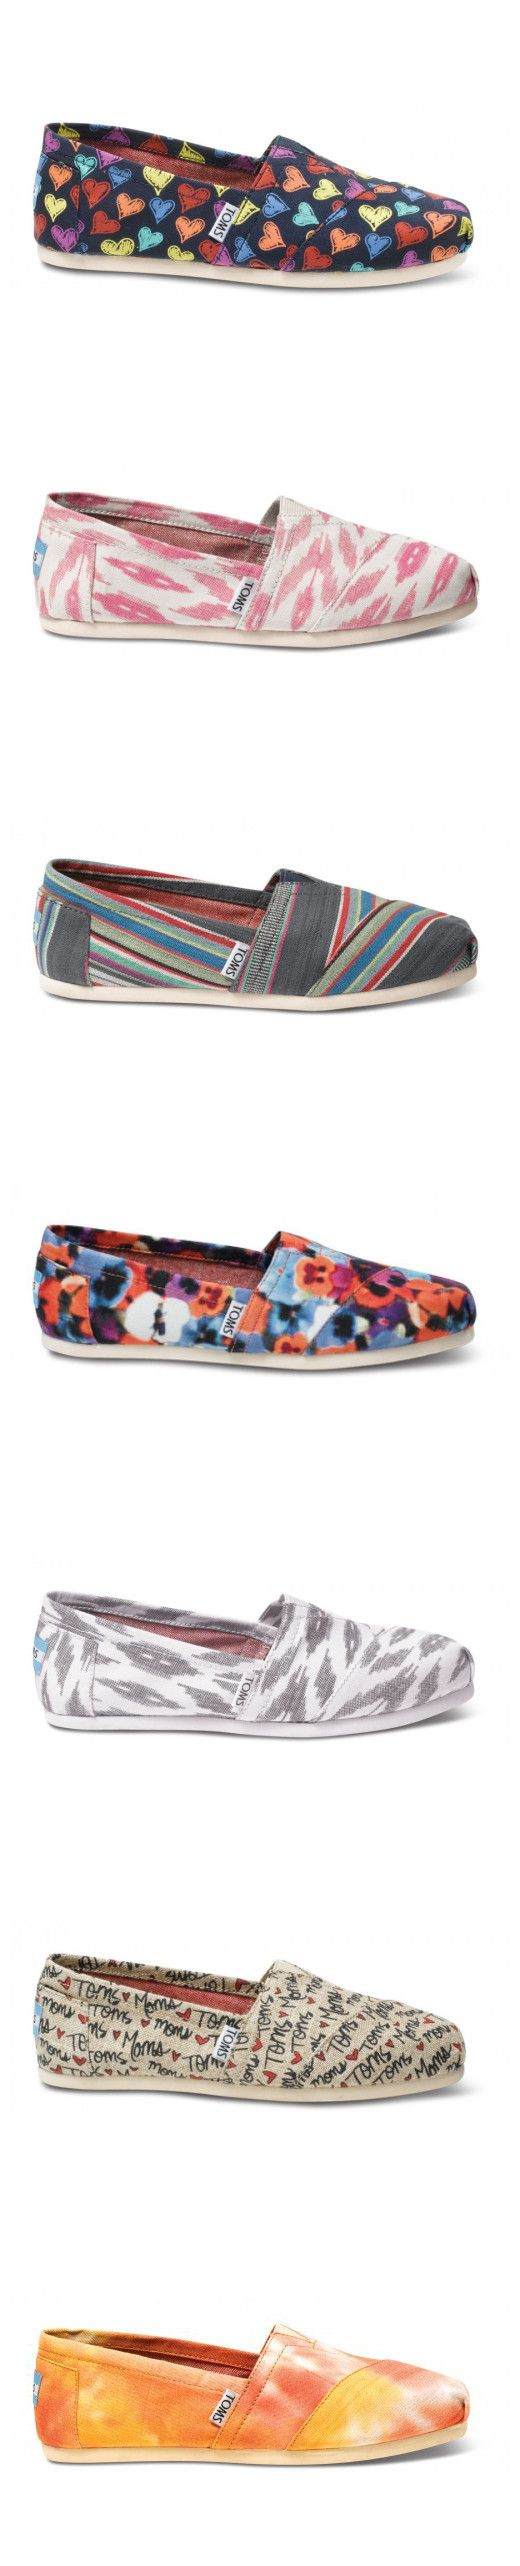 Dream closet!Toms Outlet! $19.99 OMG!! Holy cow, I'm gonna love this site #Toms shoes #shoes #fashion